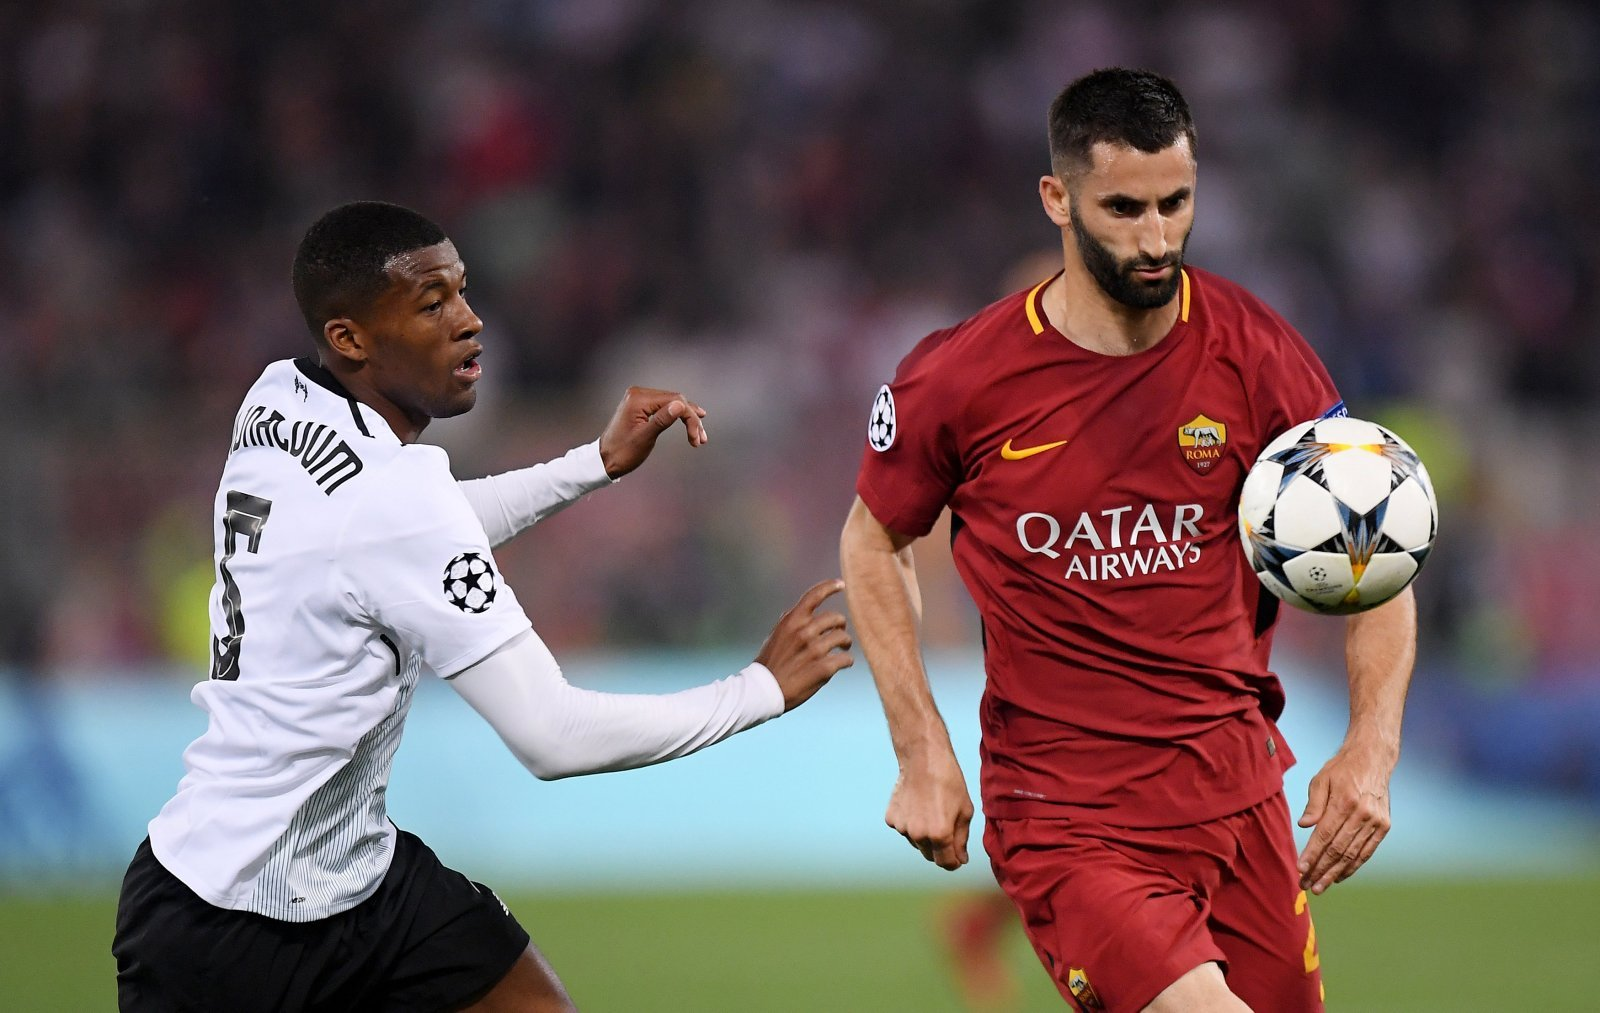 Maxime Gonalons just isn't the answer for Everton this summer